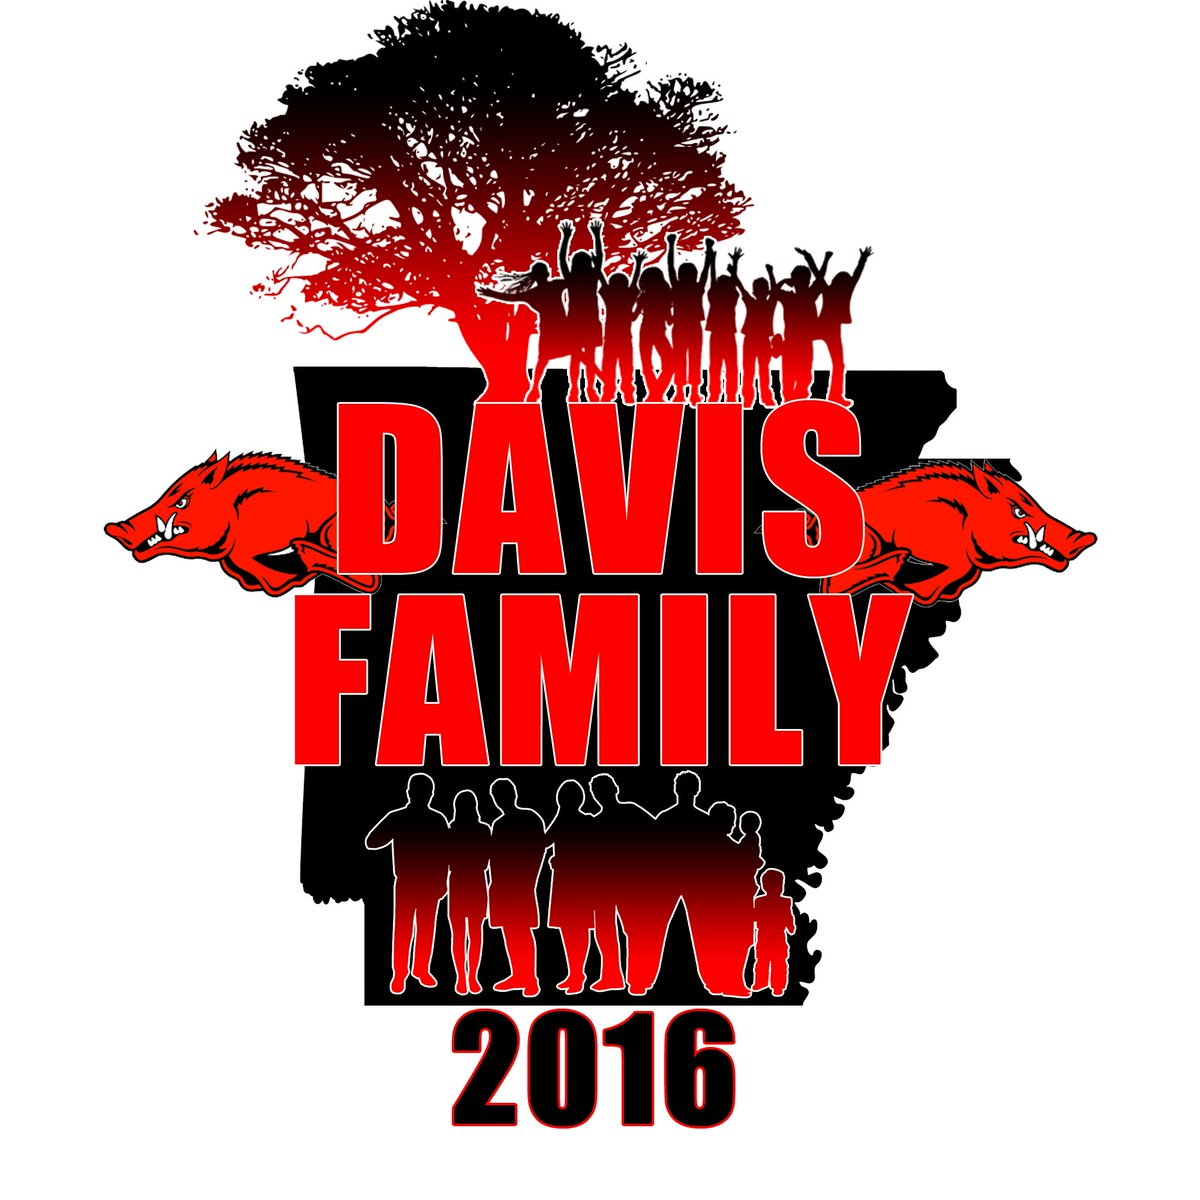 King Roy On Twitter Who Need A T Shirt Design Family Reunion Logo 75 Per Design Dm Me Today